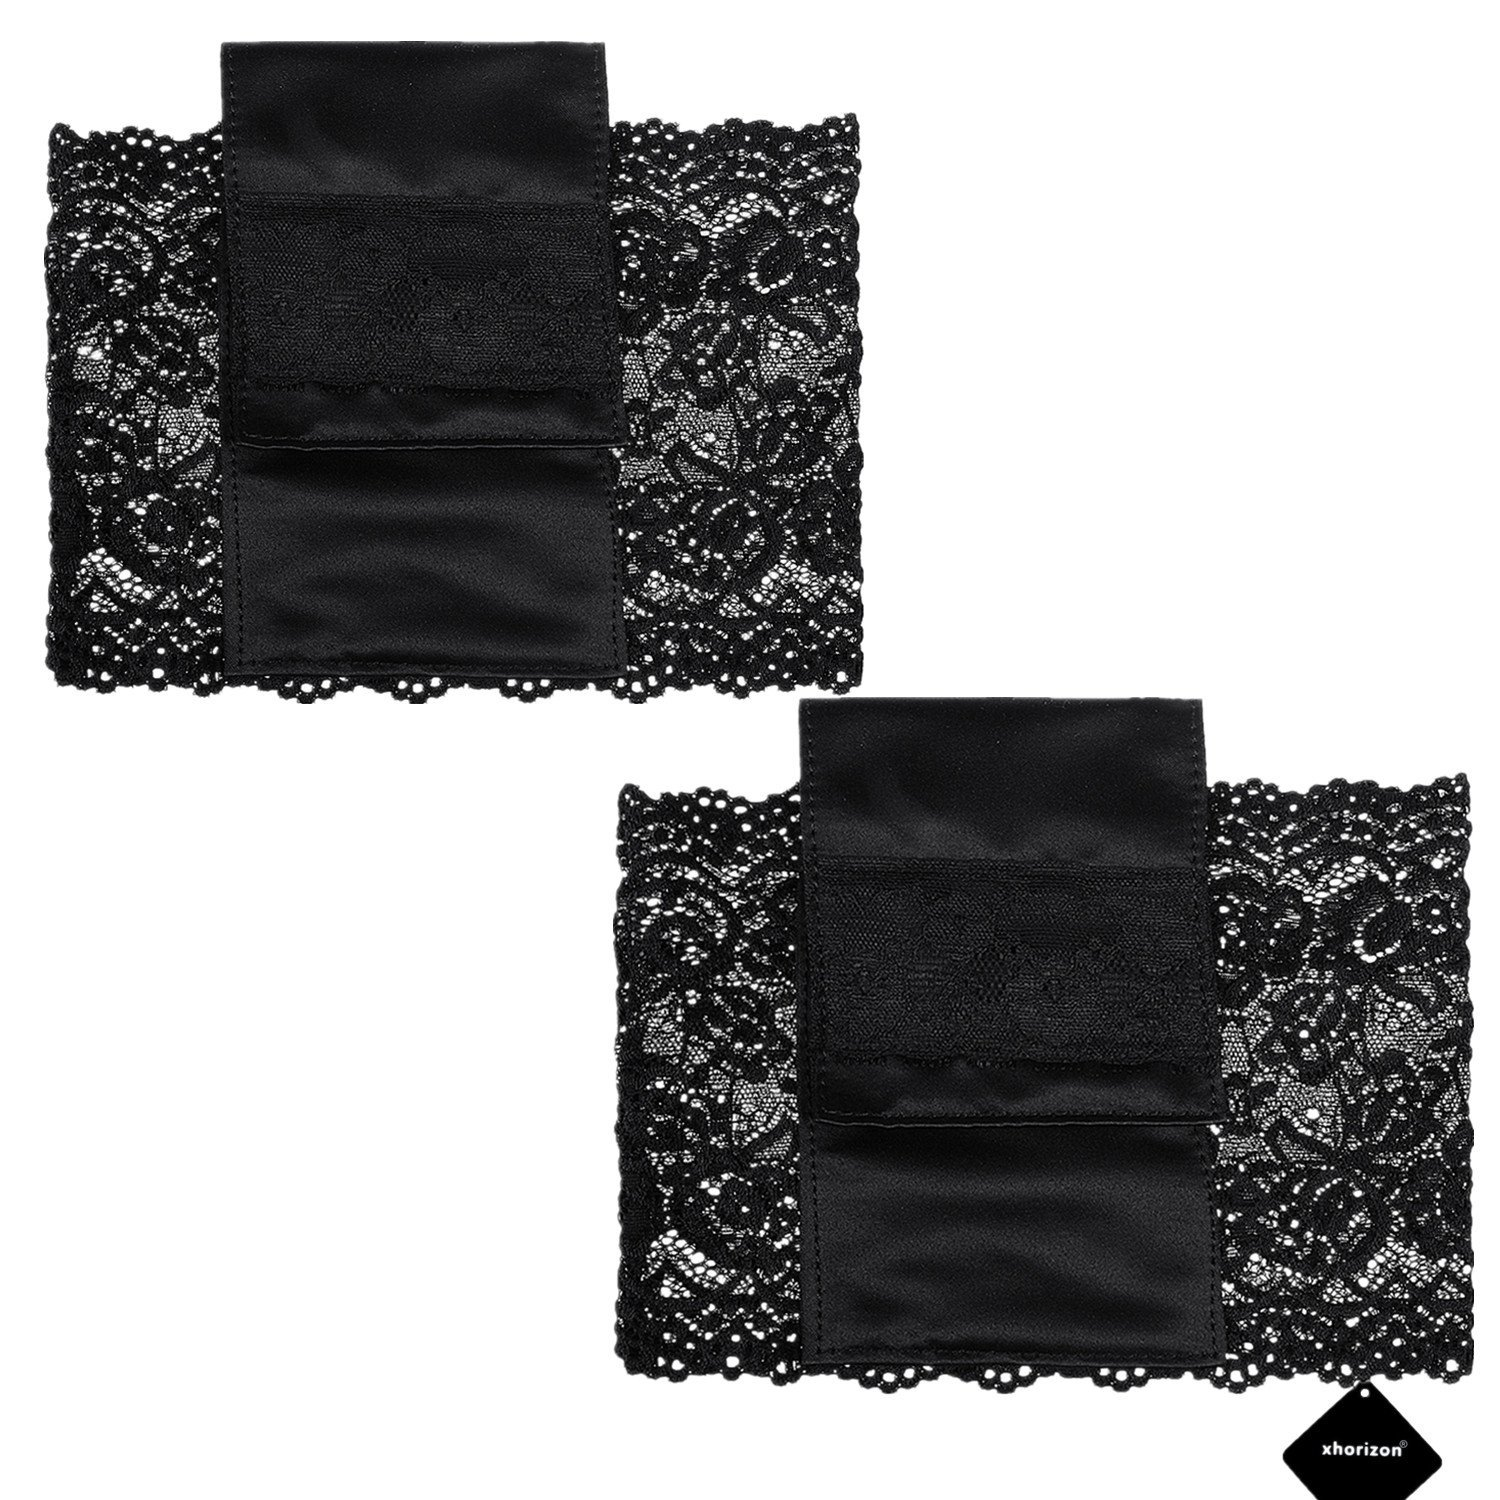 xhorizon TM SR1 Women Elastic Garter Purse